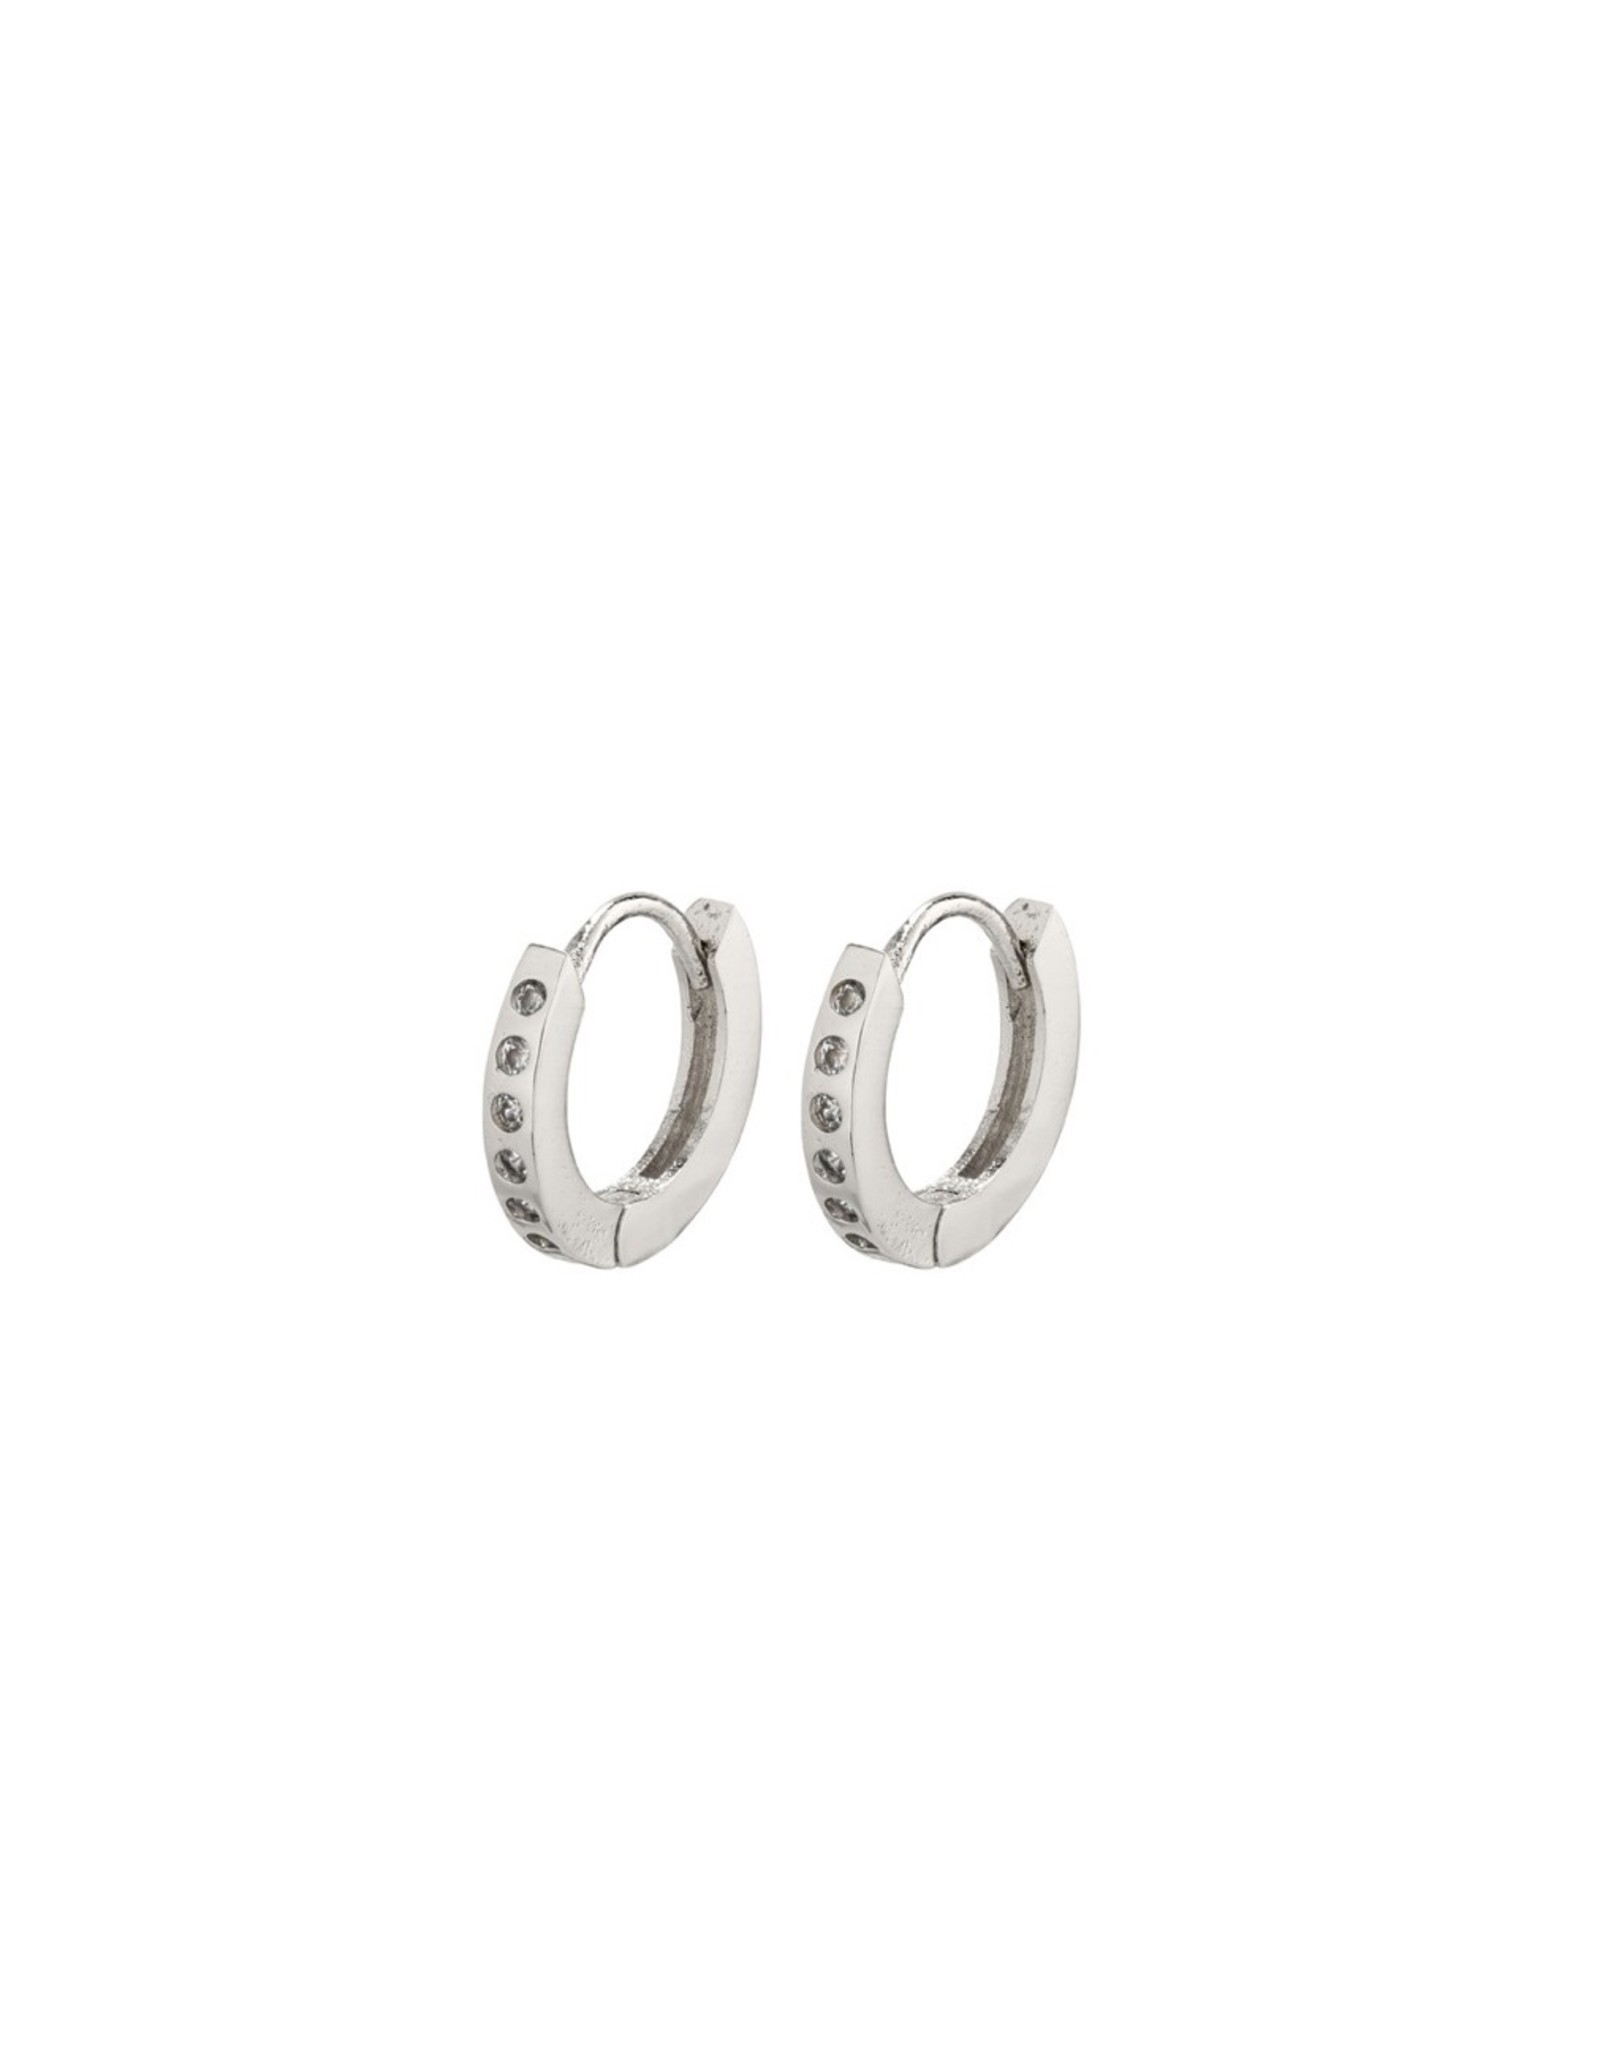 Pilgrim Pilgrim Earrings, Gry Small Hoops, Silver Plated